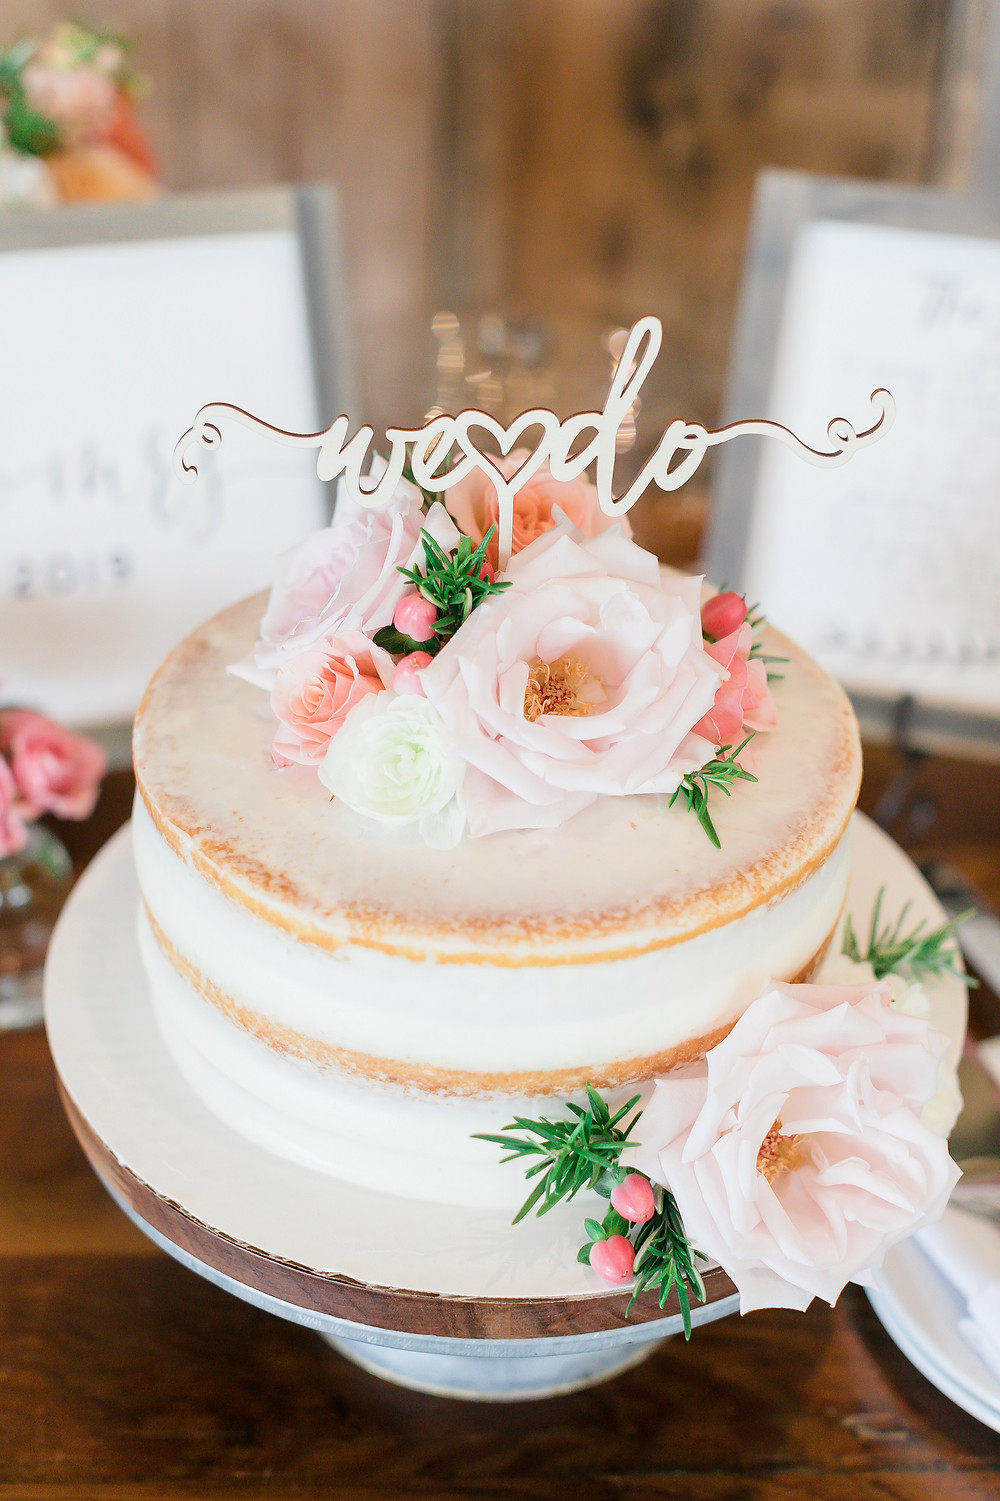 We do wood cake topper on naked wedding cake with pink and peach roses by Studio Bloom Iowa